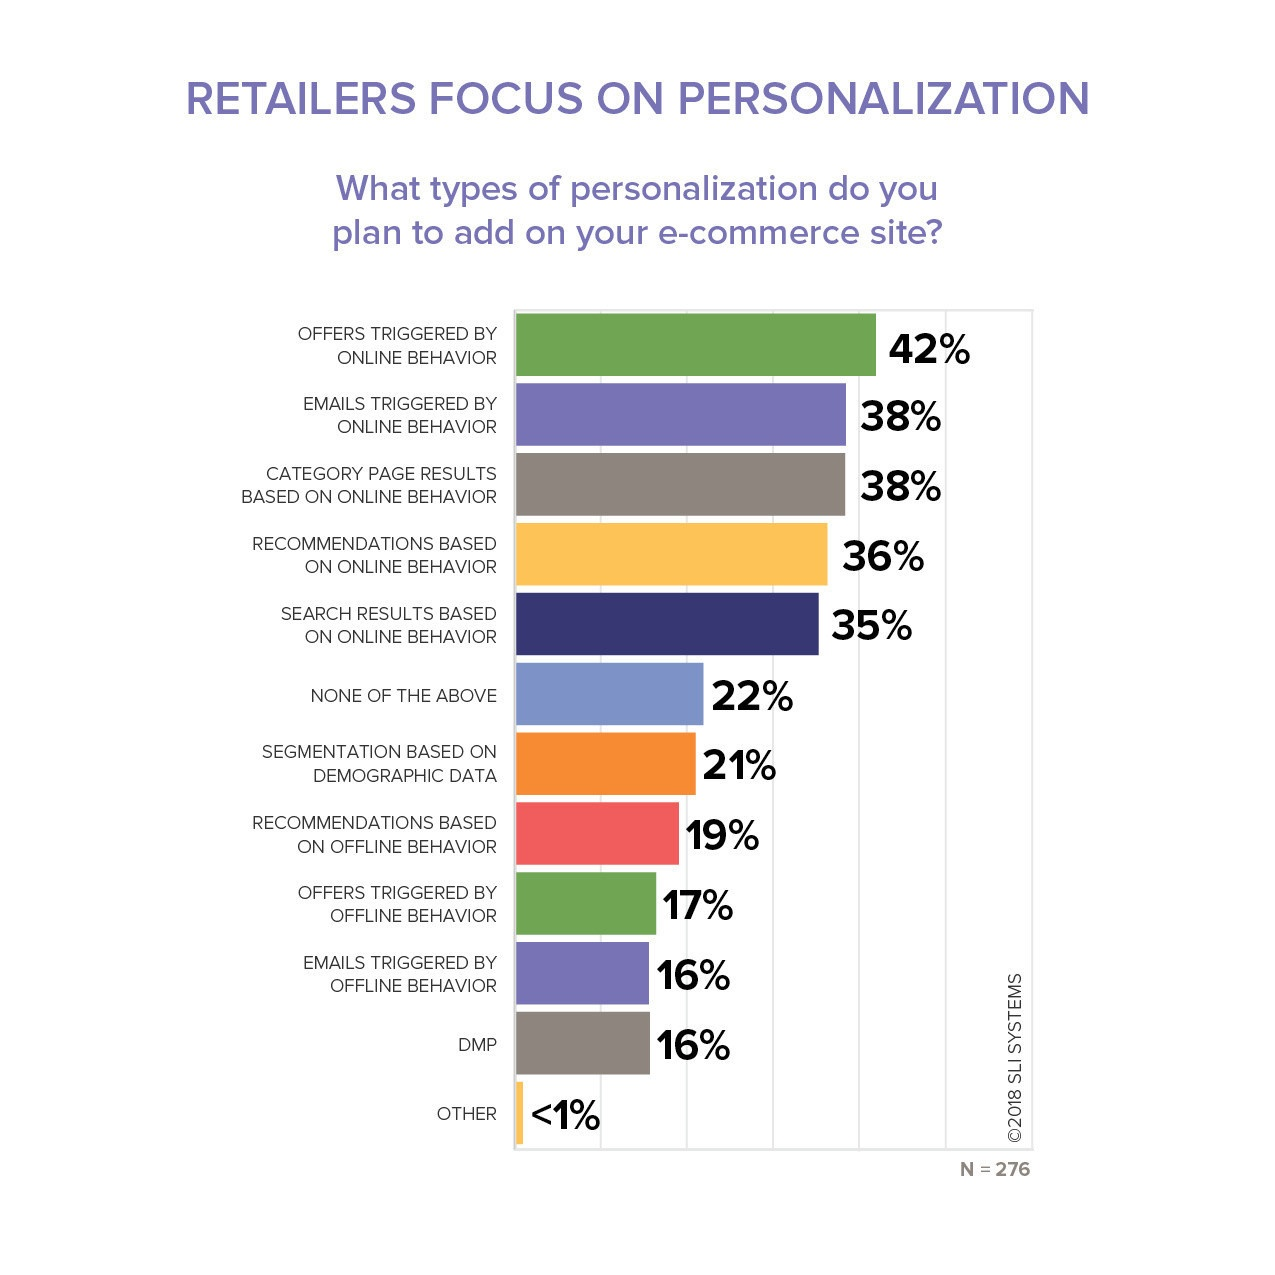 E-commerce personalization types for retail